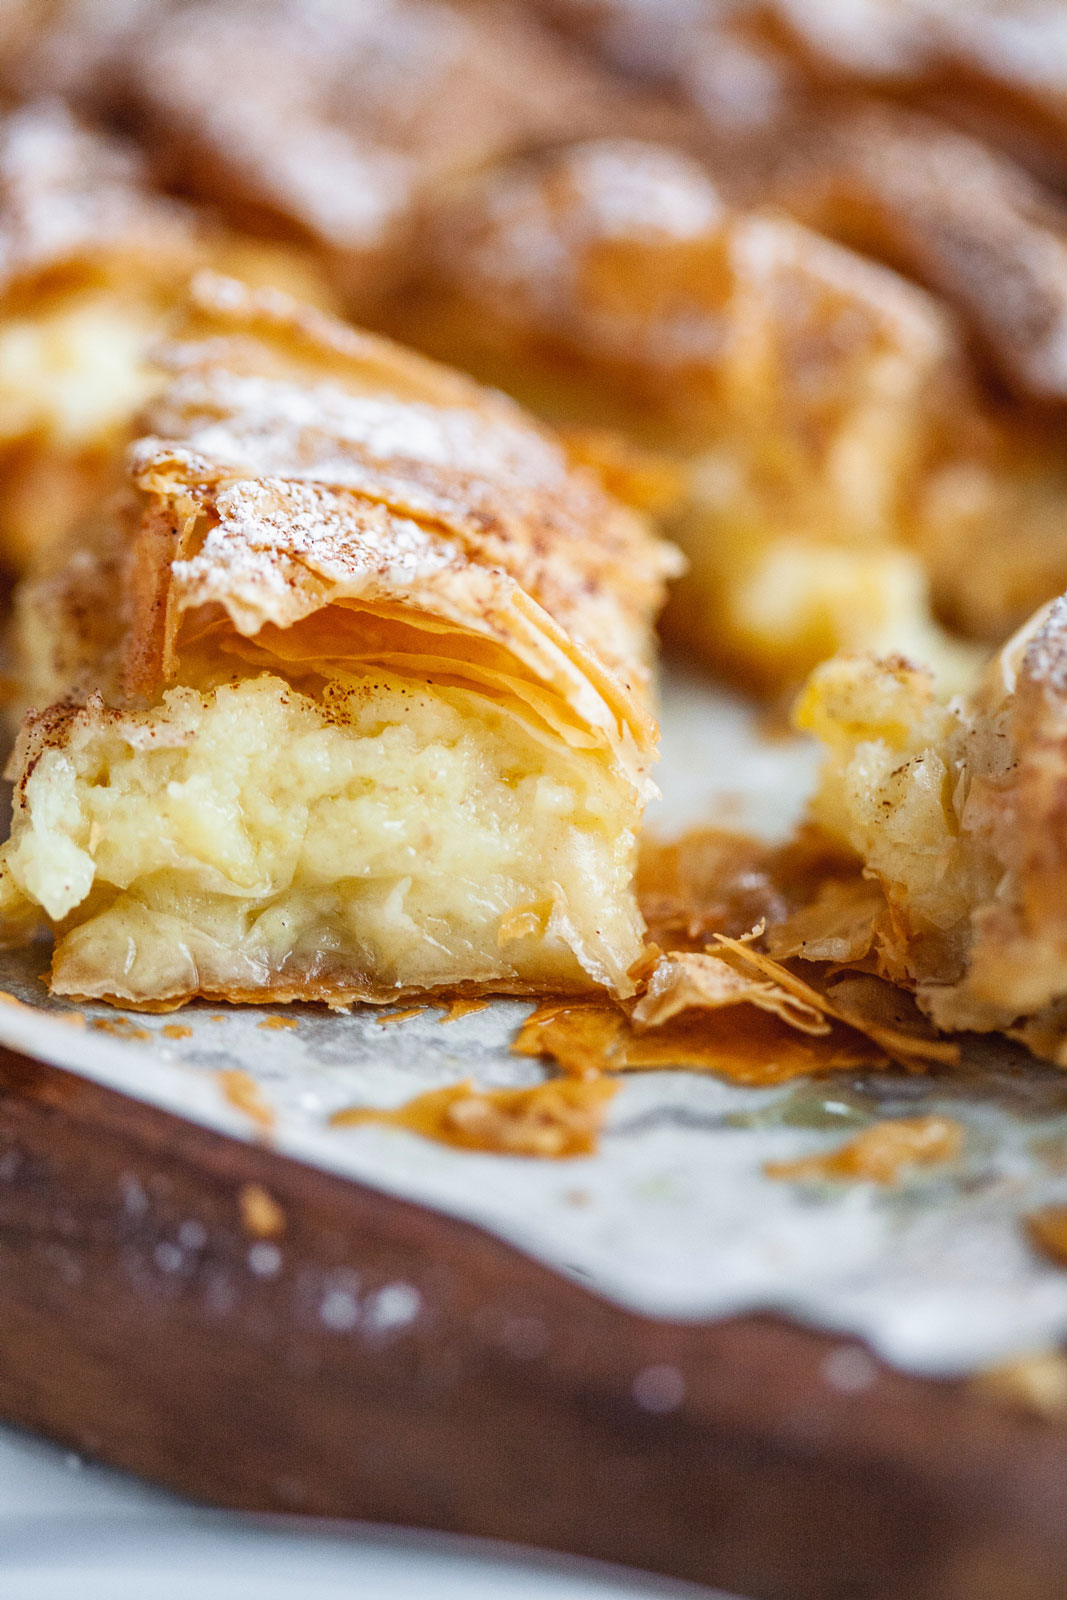 Greek-Style Custard Pastry